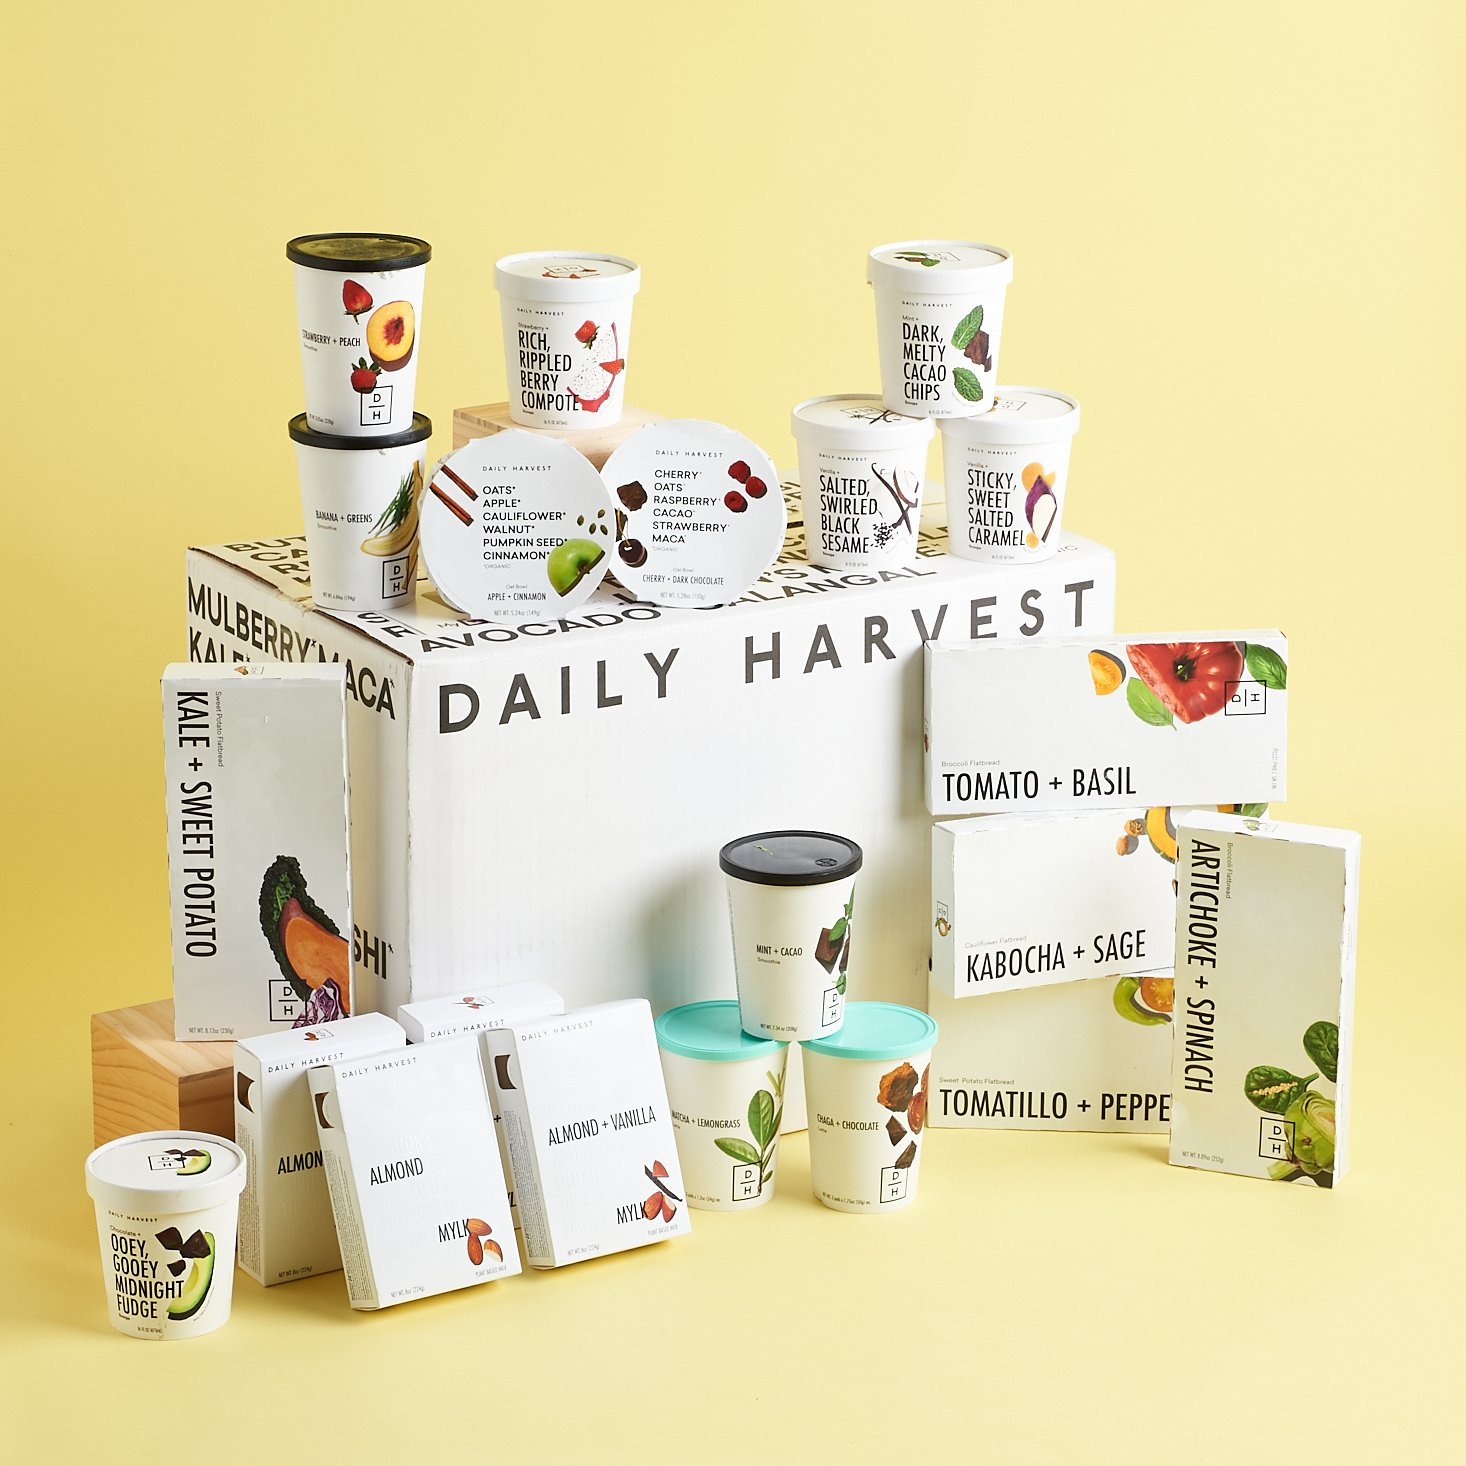 My Daily Harvest Review — I Stocked My Freezer With These Vegan Treats